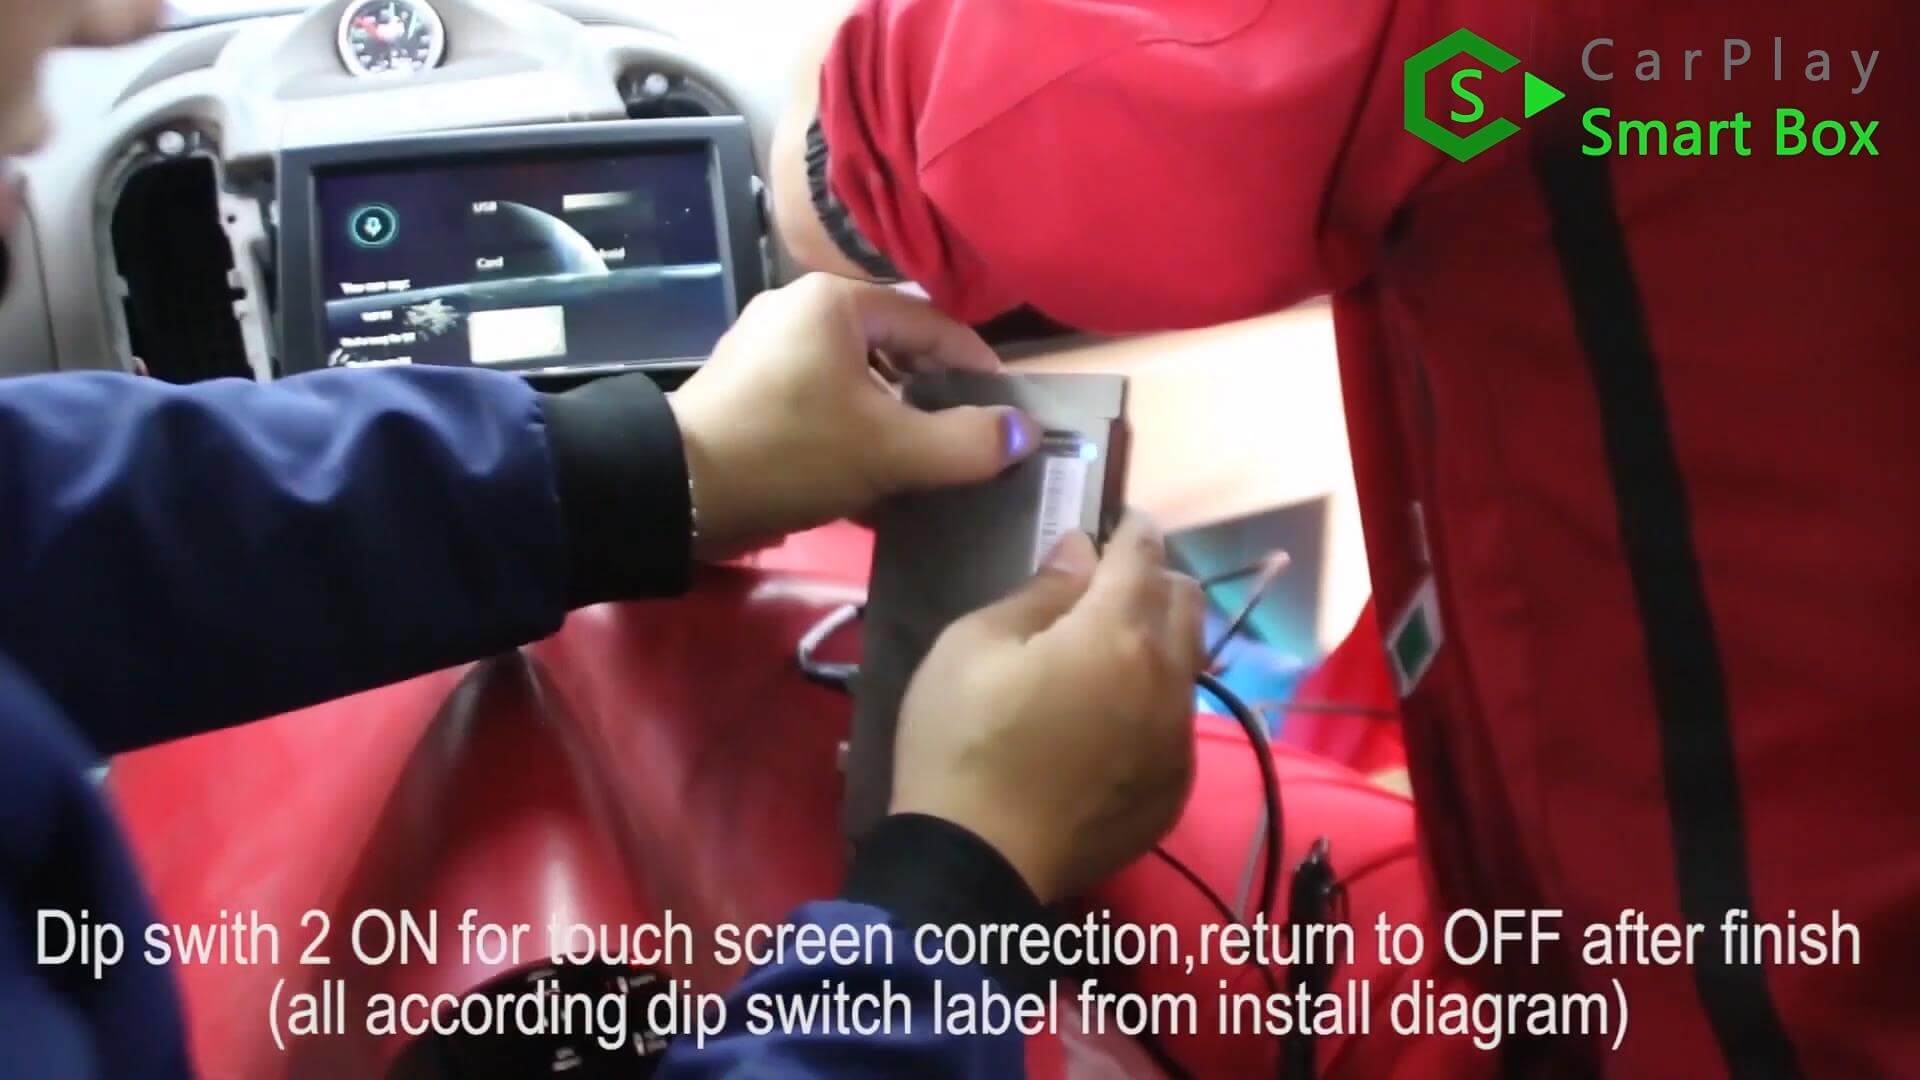 14. Dip switch 2 ON for touch screen correction, return to OFF after finished (all according dip switch lable from install diagram) -  Step by Step Retrofit Porsche Cayenne PCM3.1 WIFI Wireless Apple CarPlay -